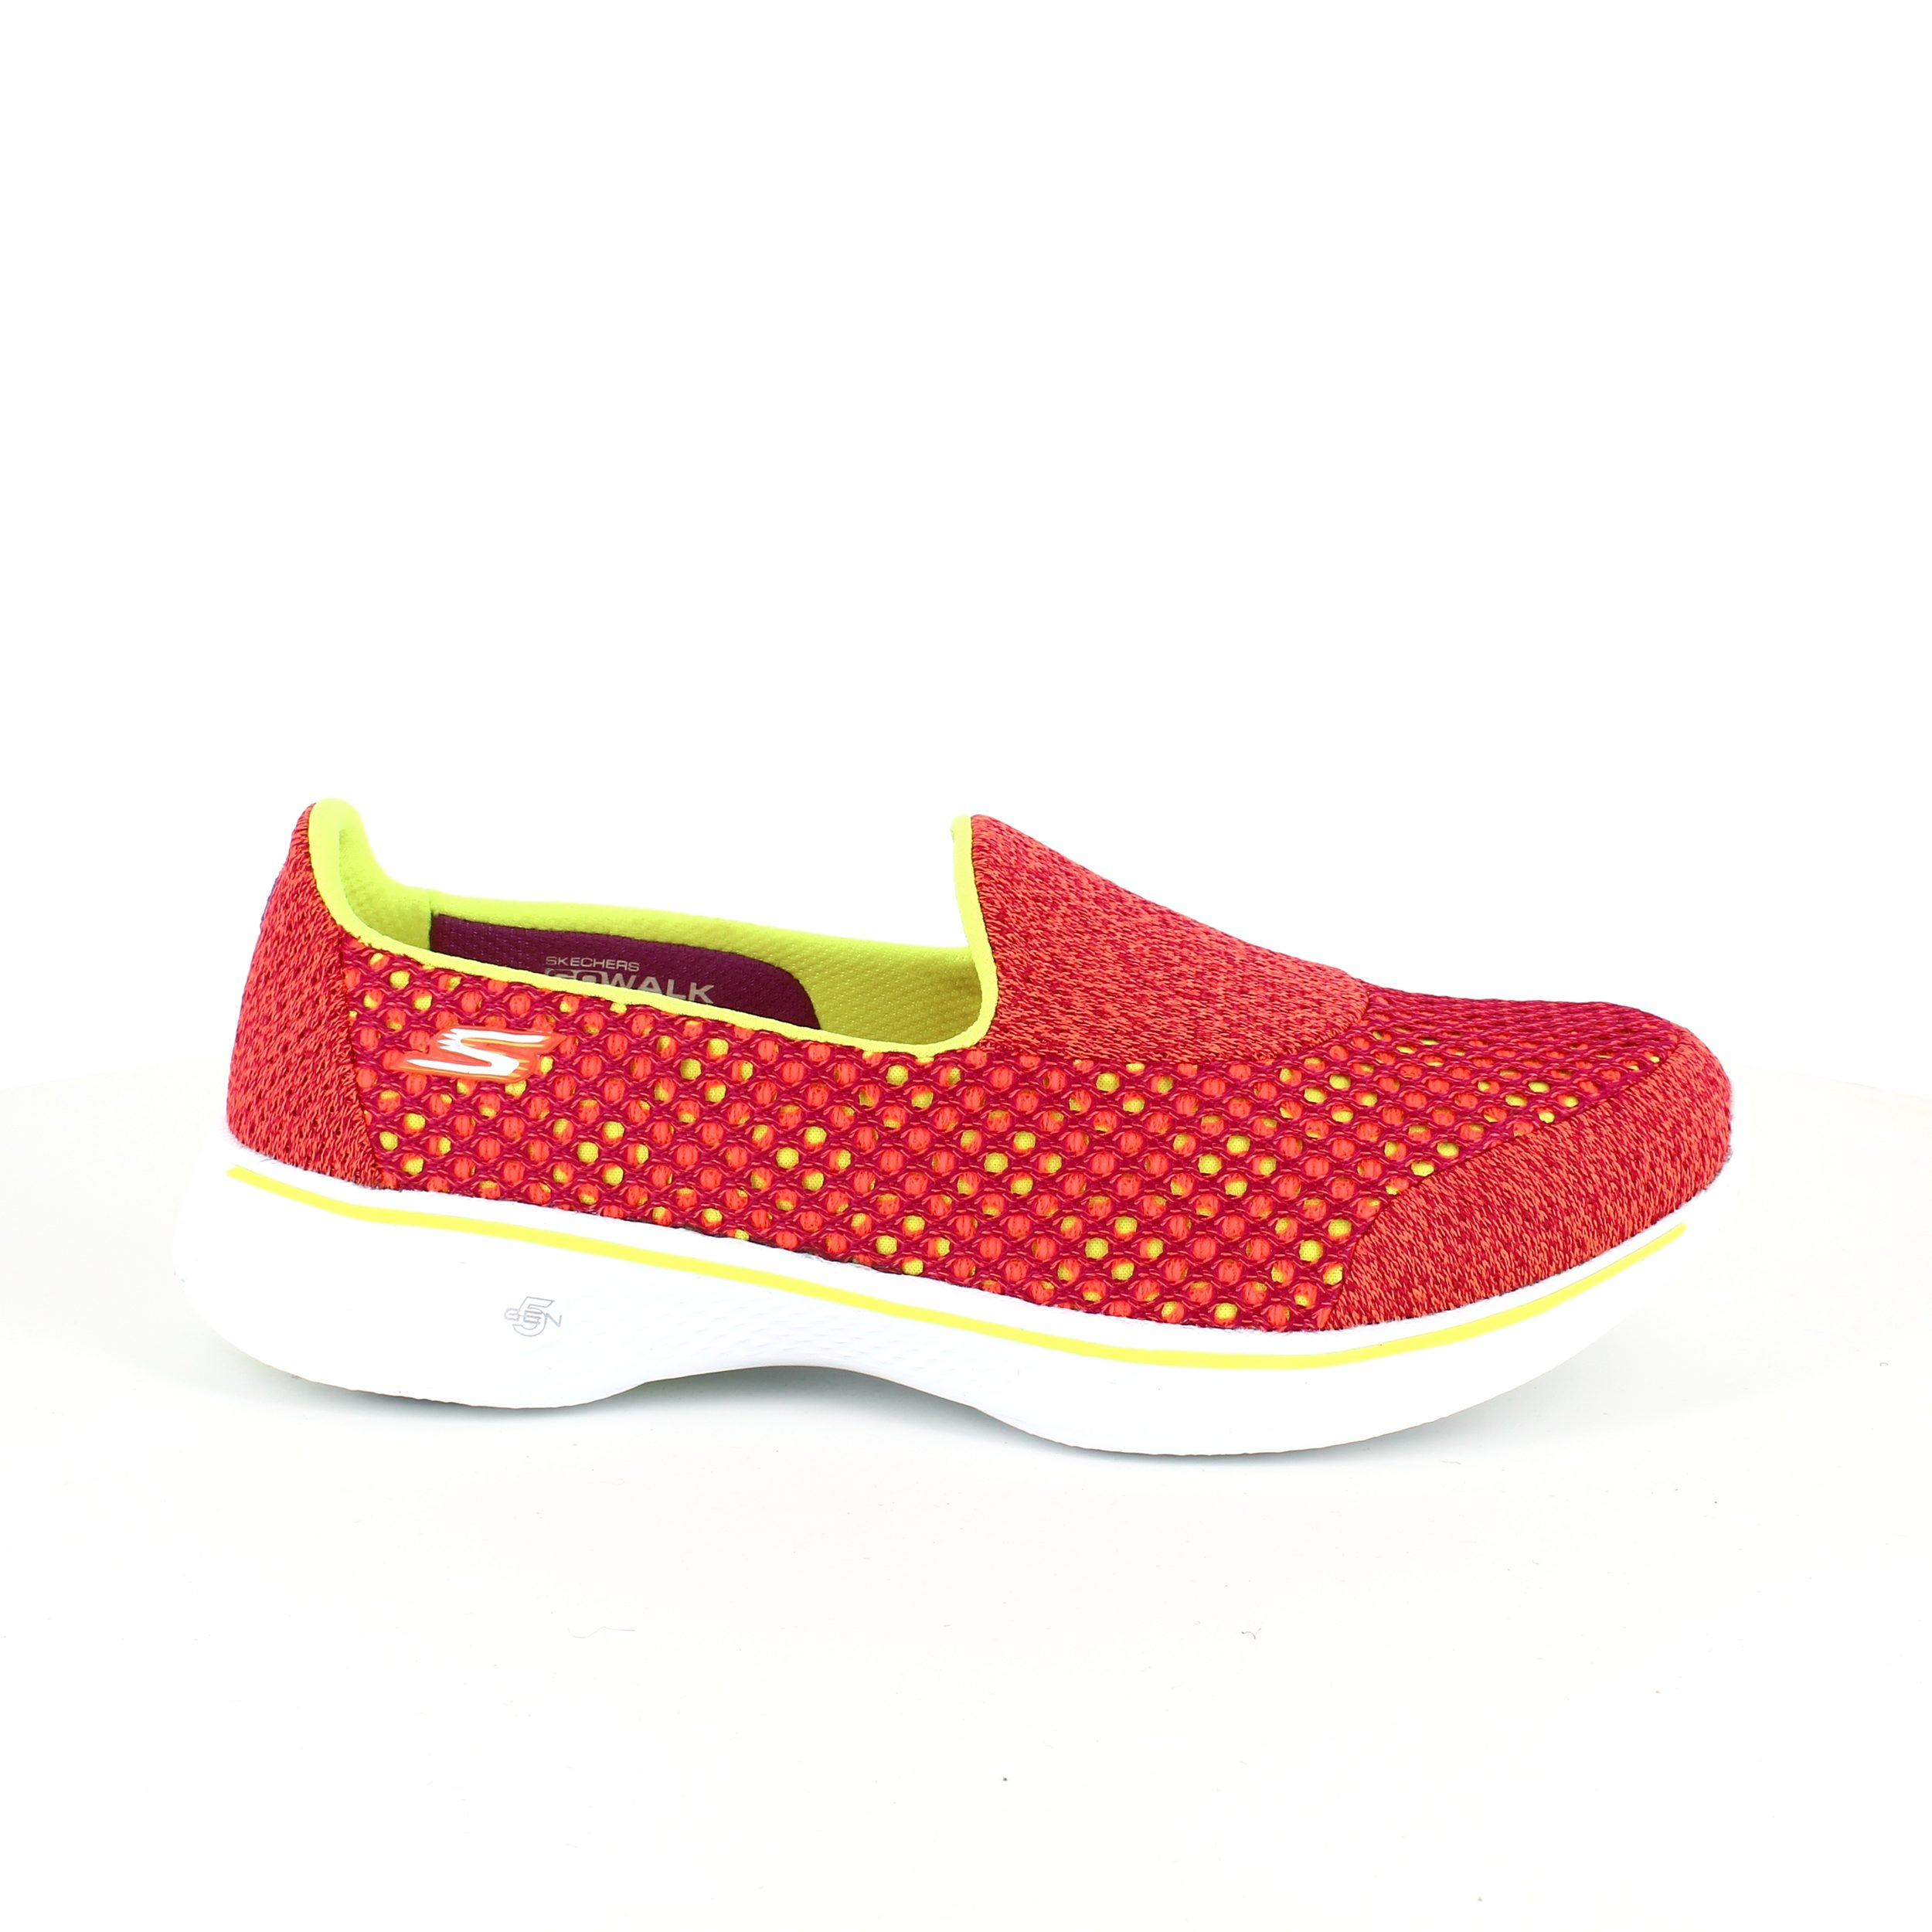 Image of   Orange ballerina fra Skechers, Go walk 4 - 36